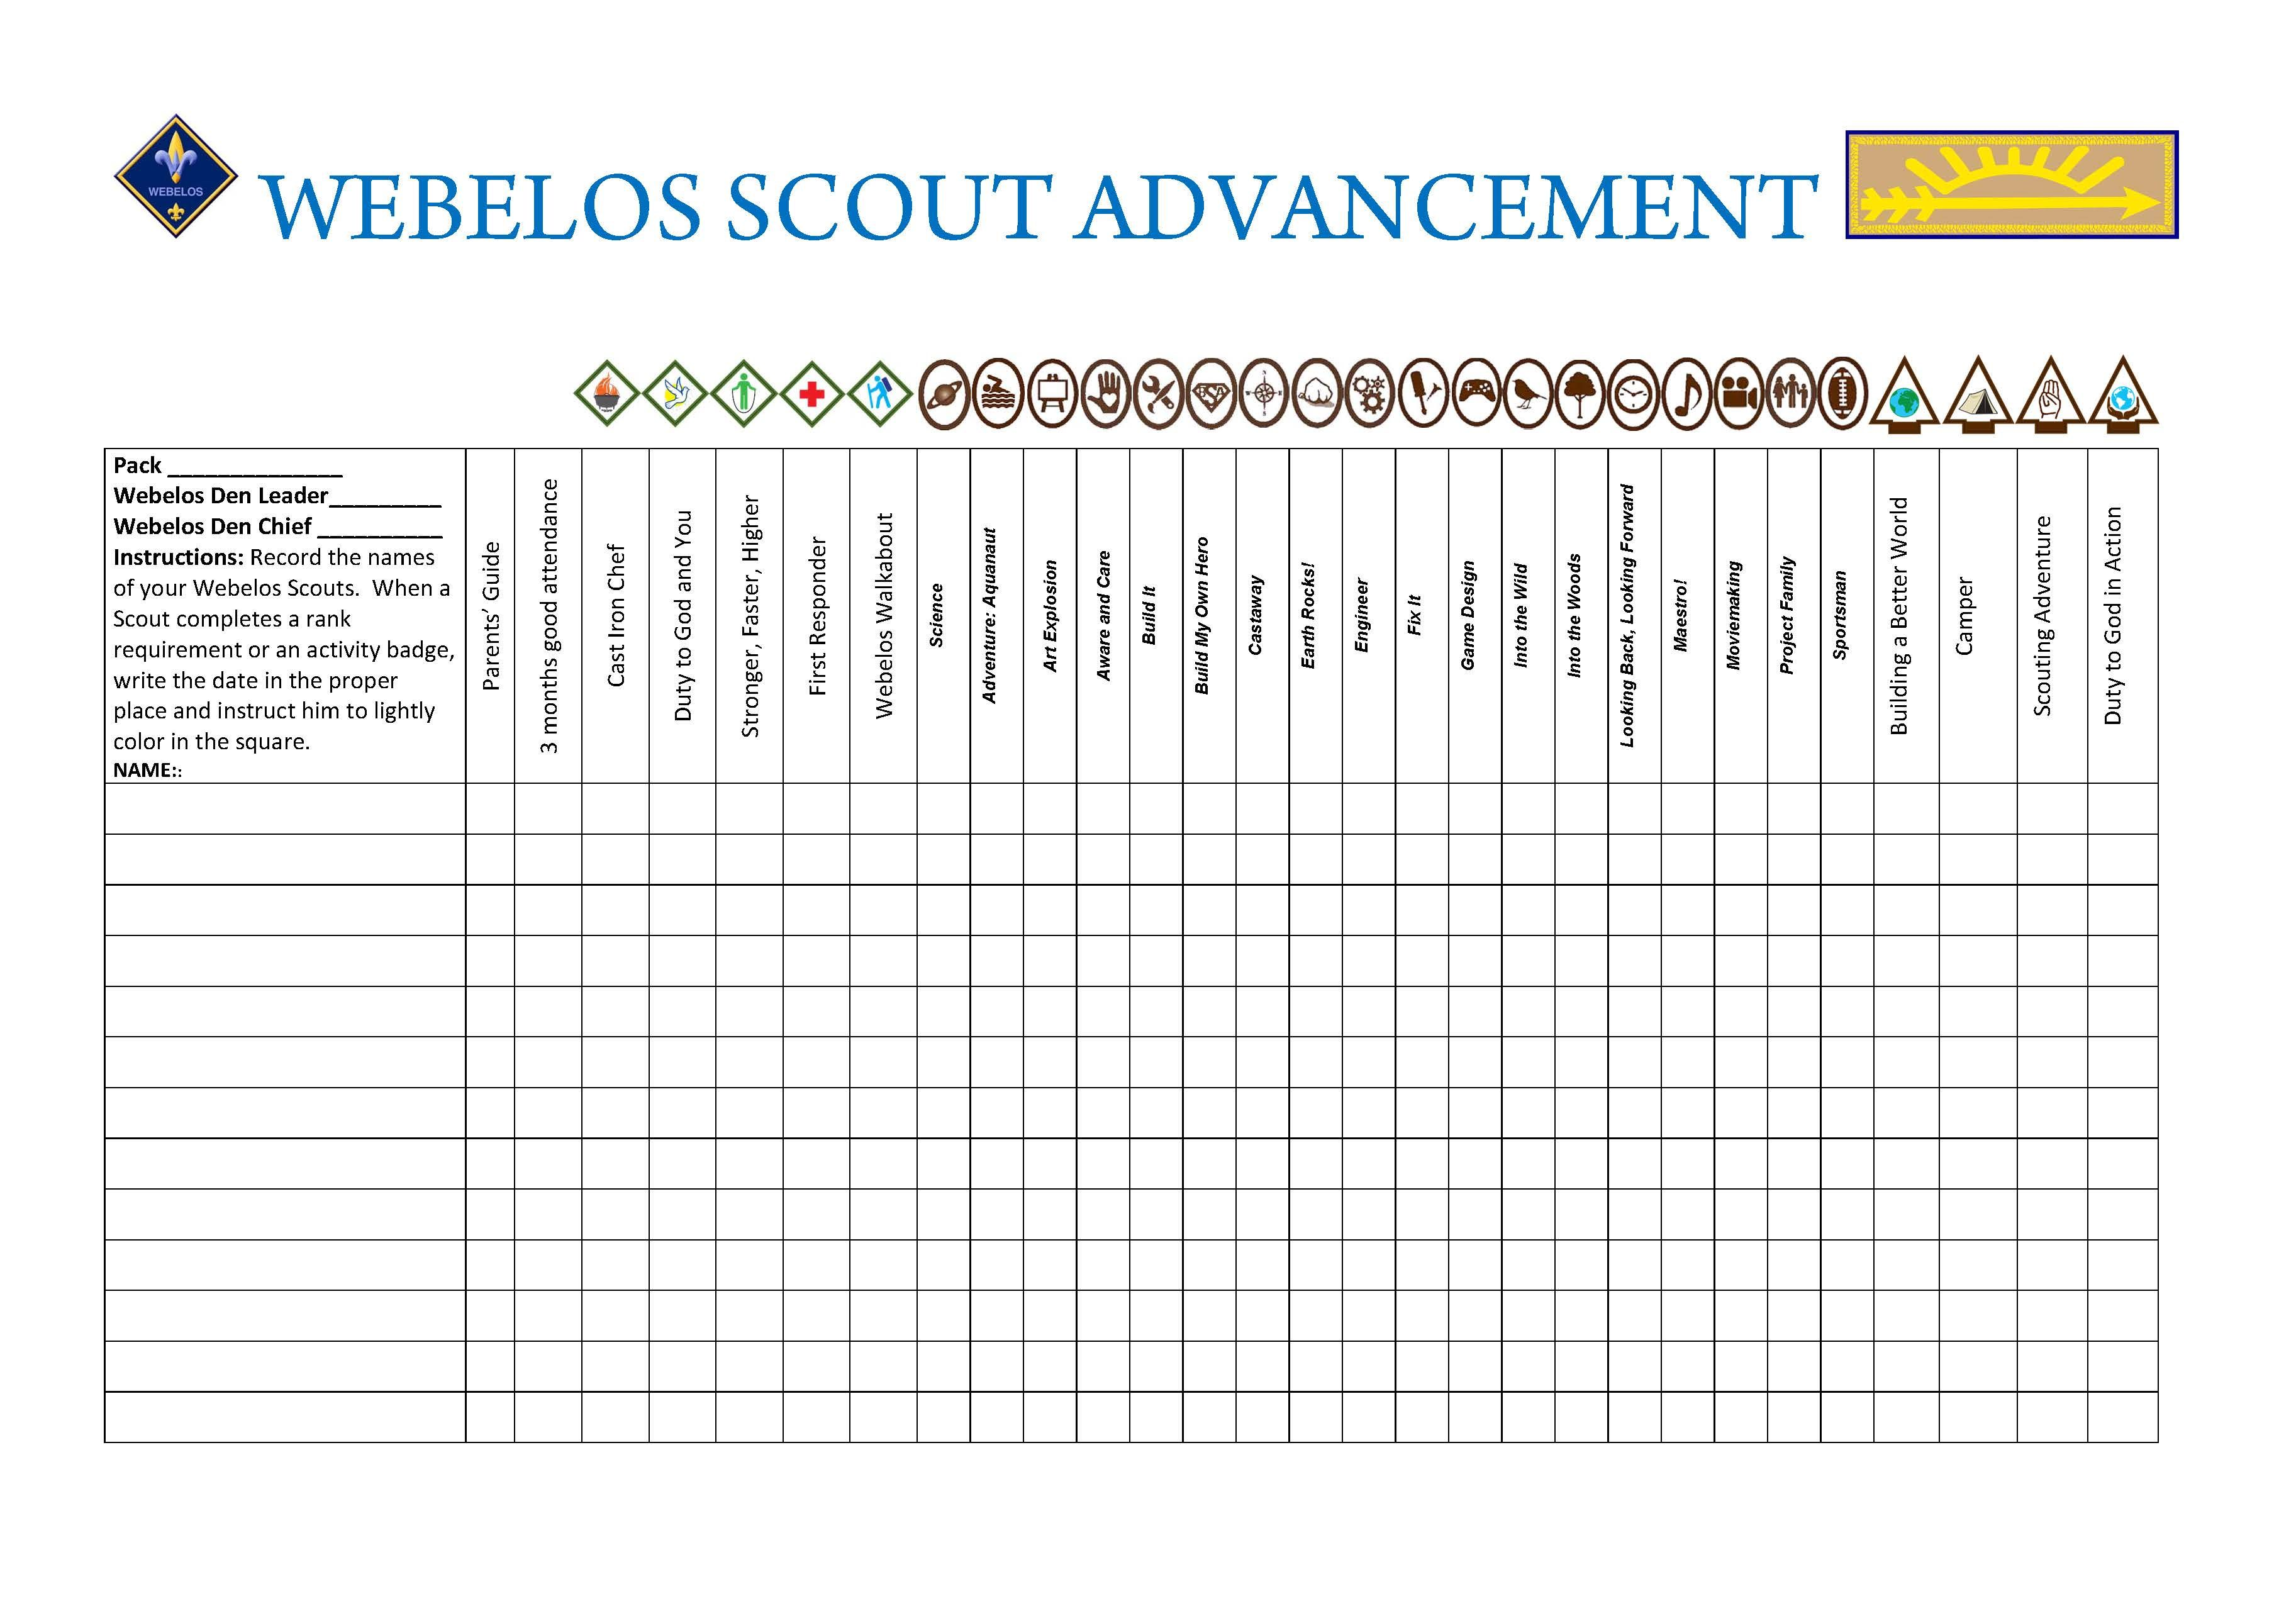 Webelos Wall Chart Of New Adventure Badges For Record